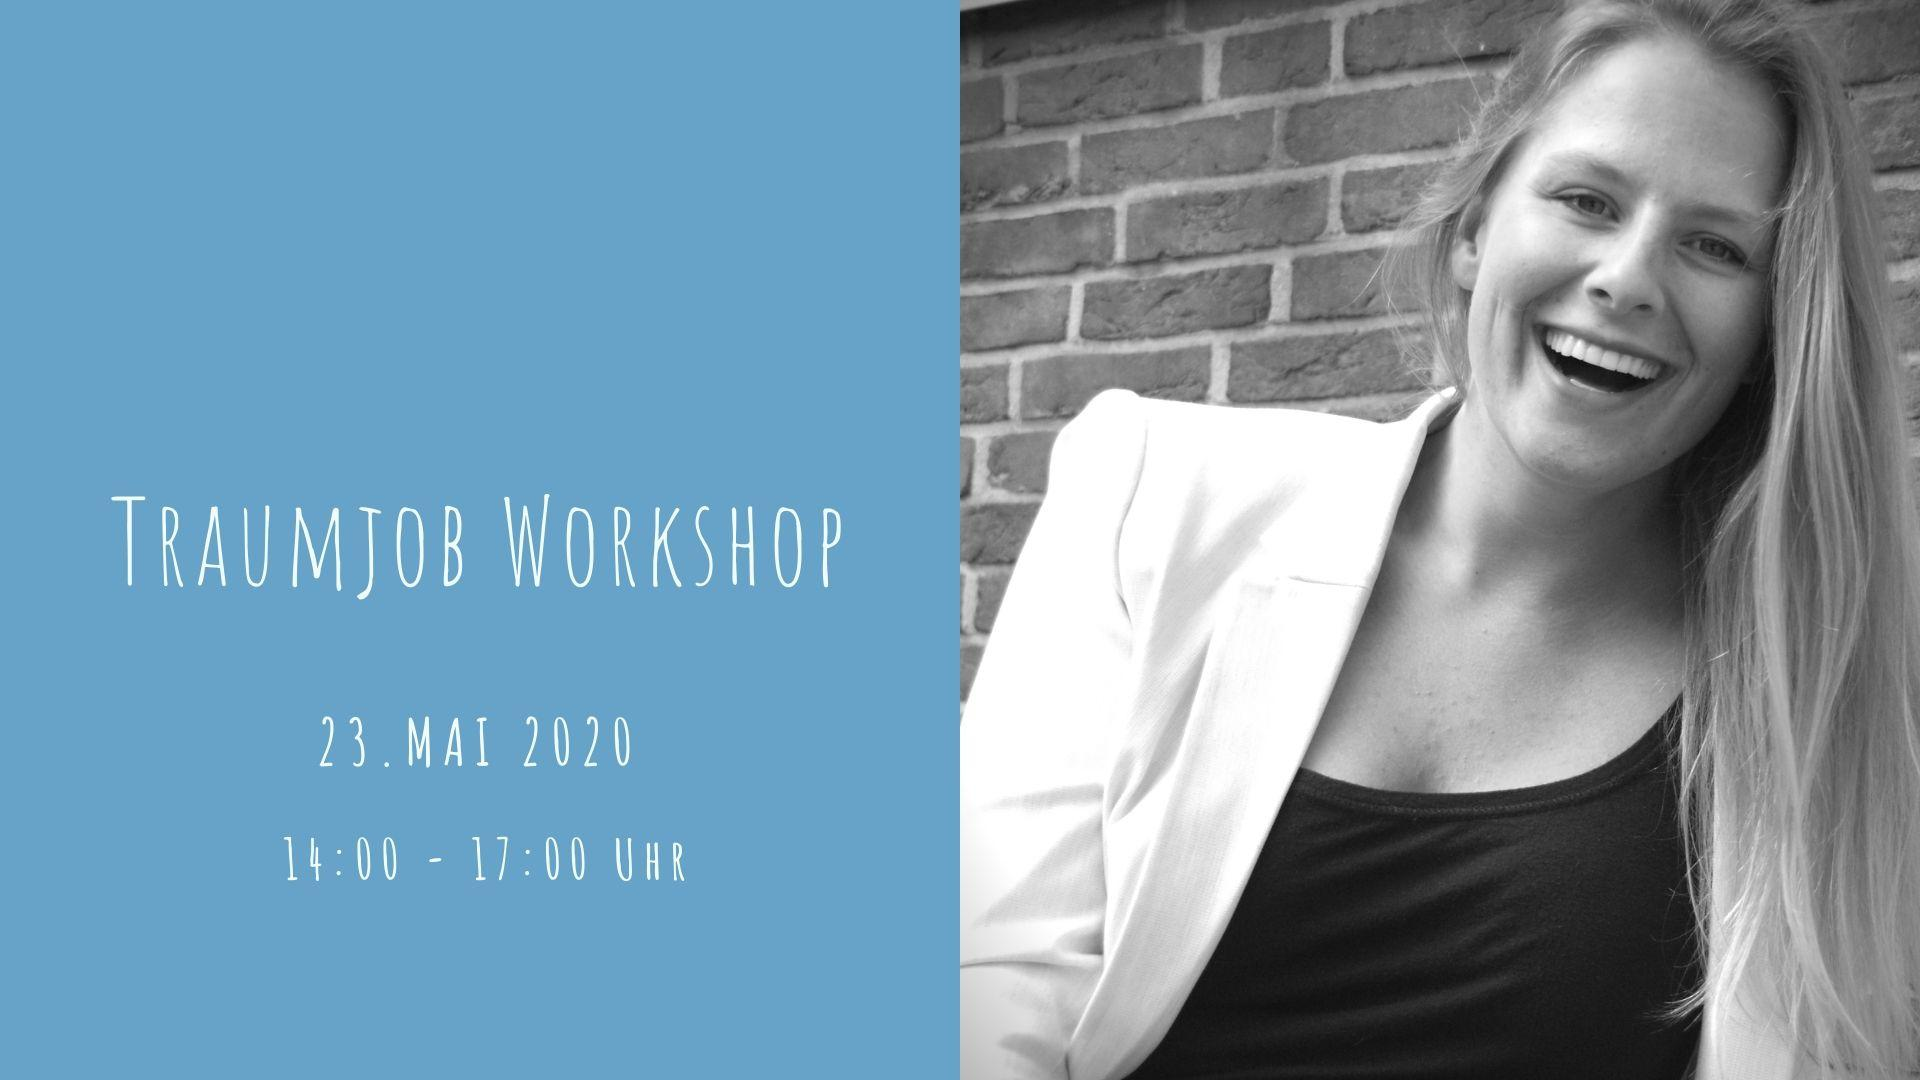 Traumjob Workshop